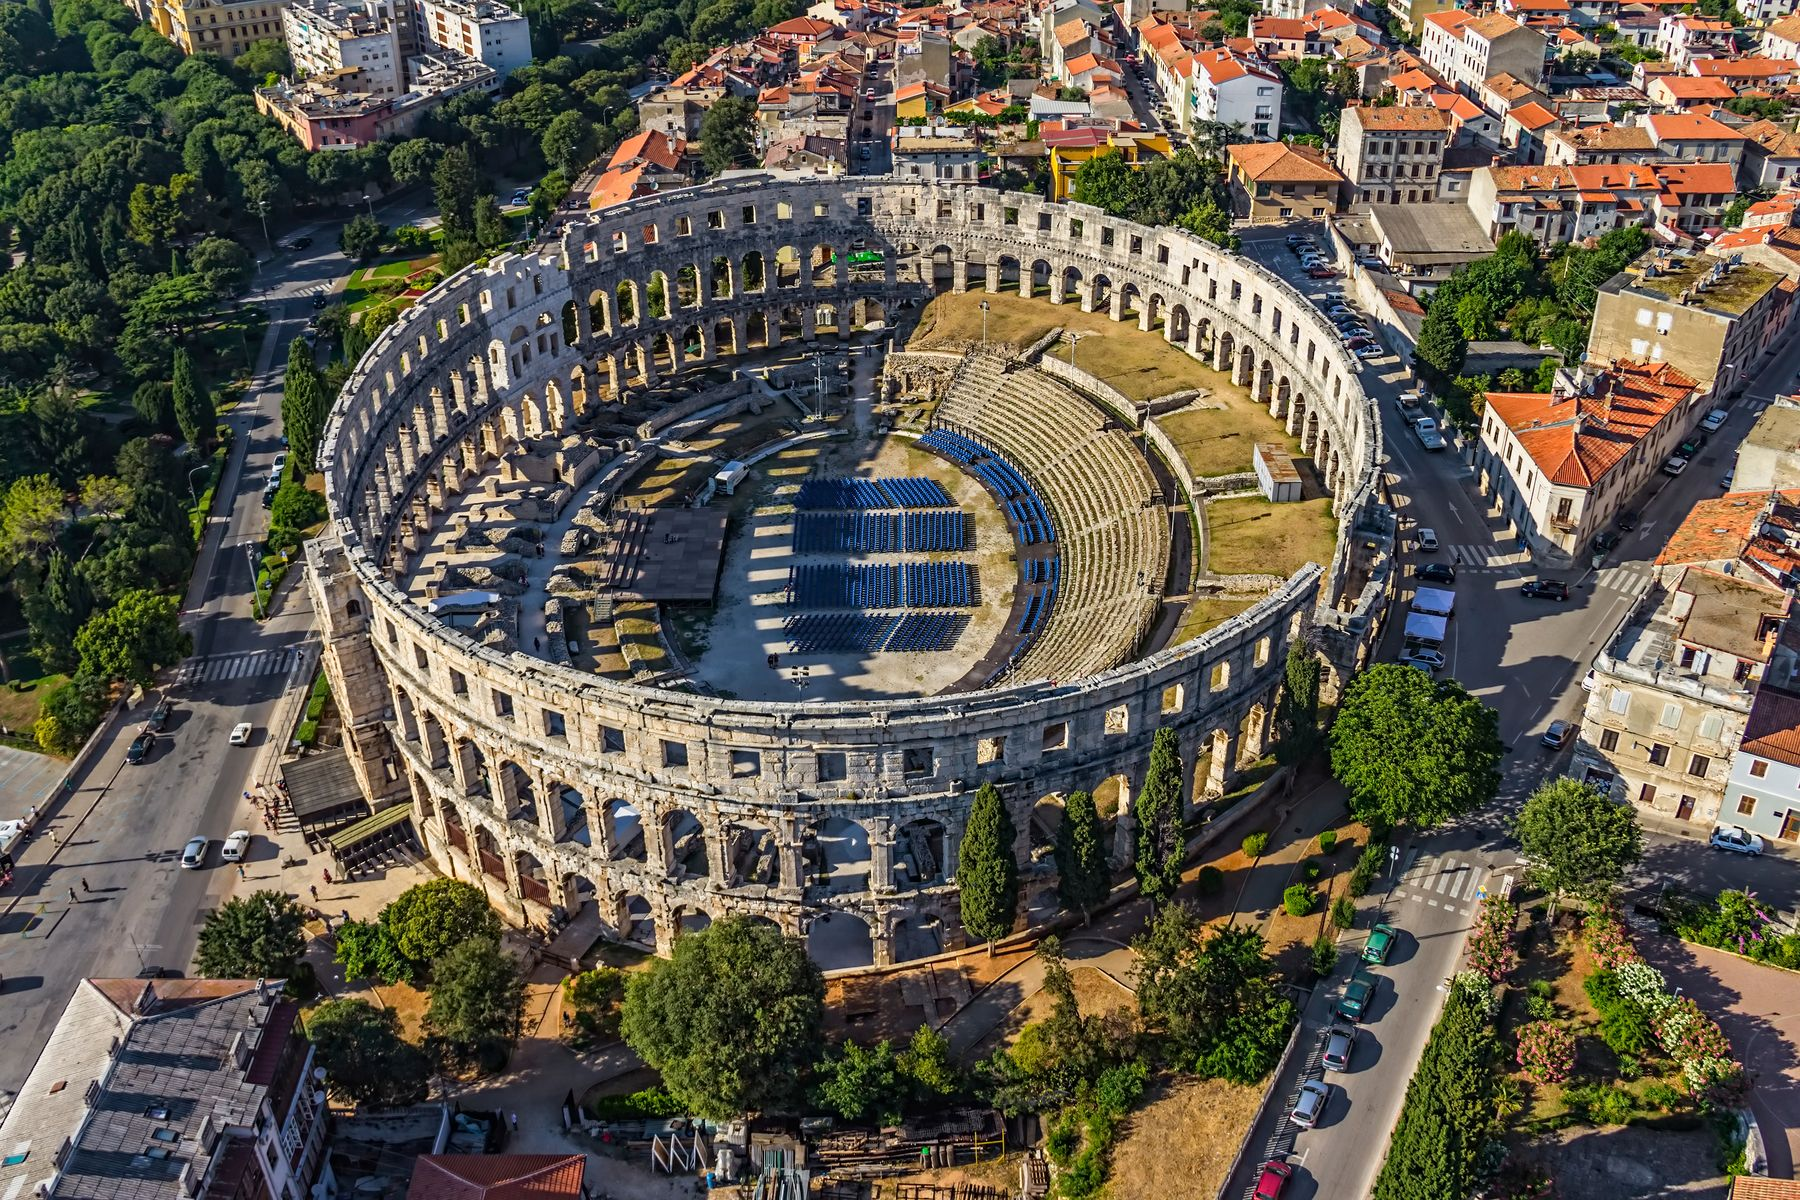 Pula is a great destination for cheap beach holidays